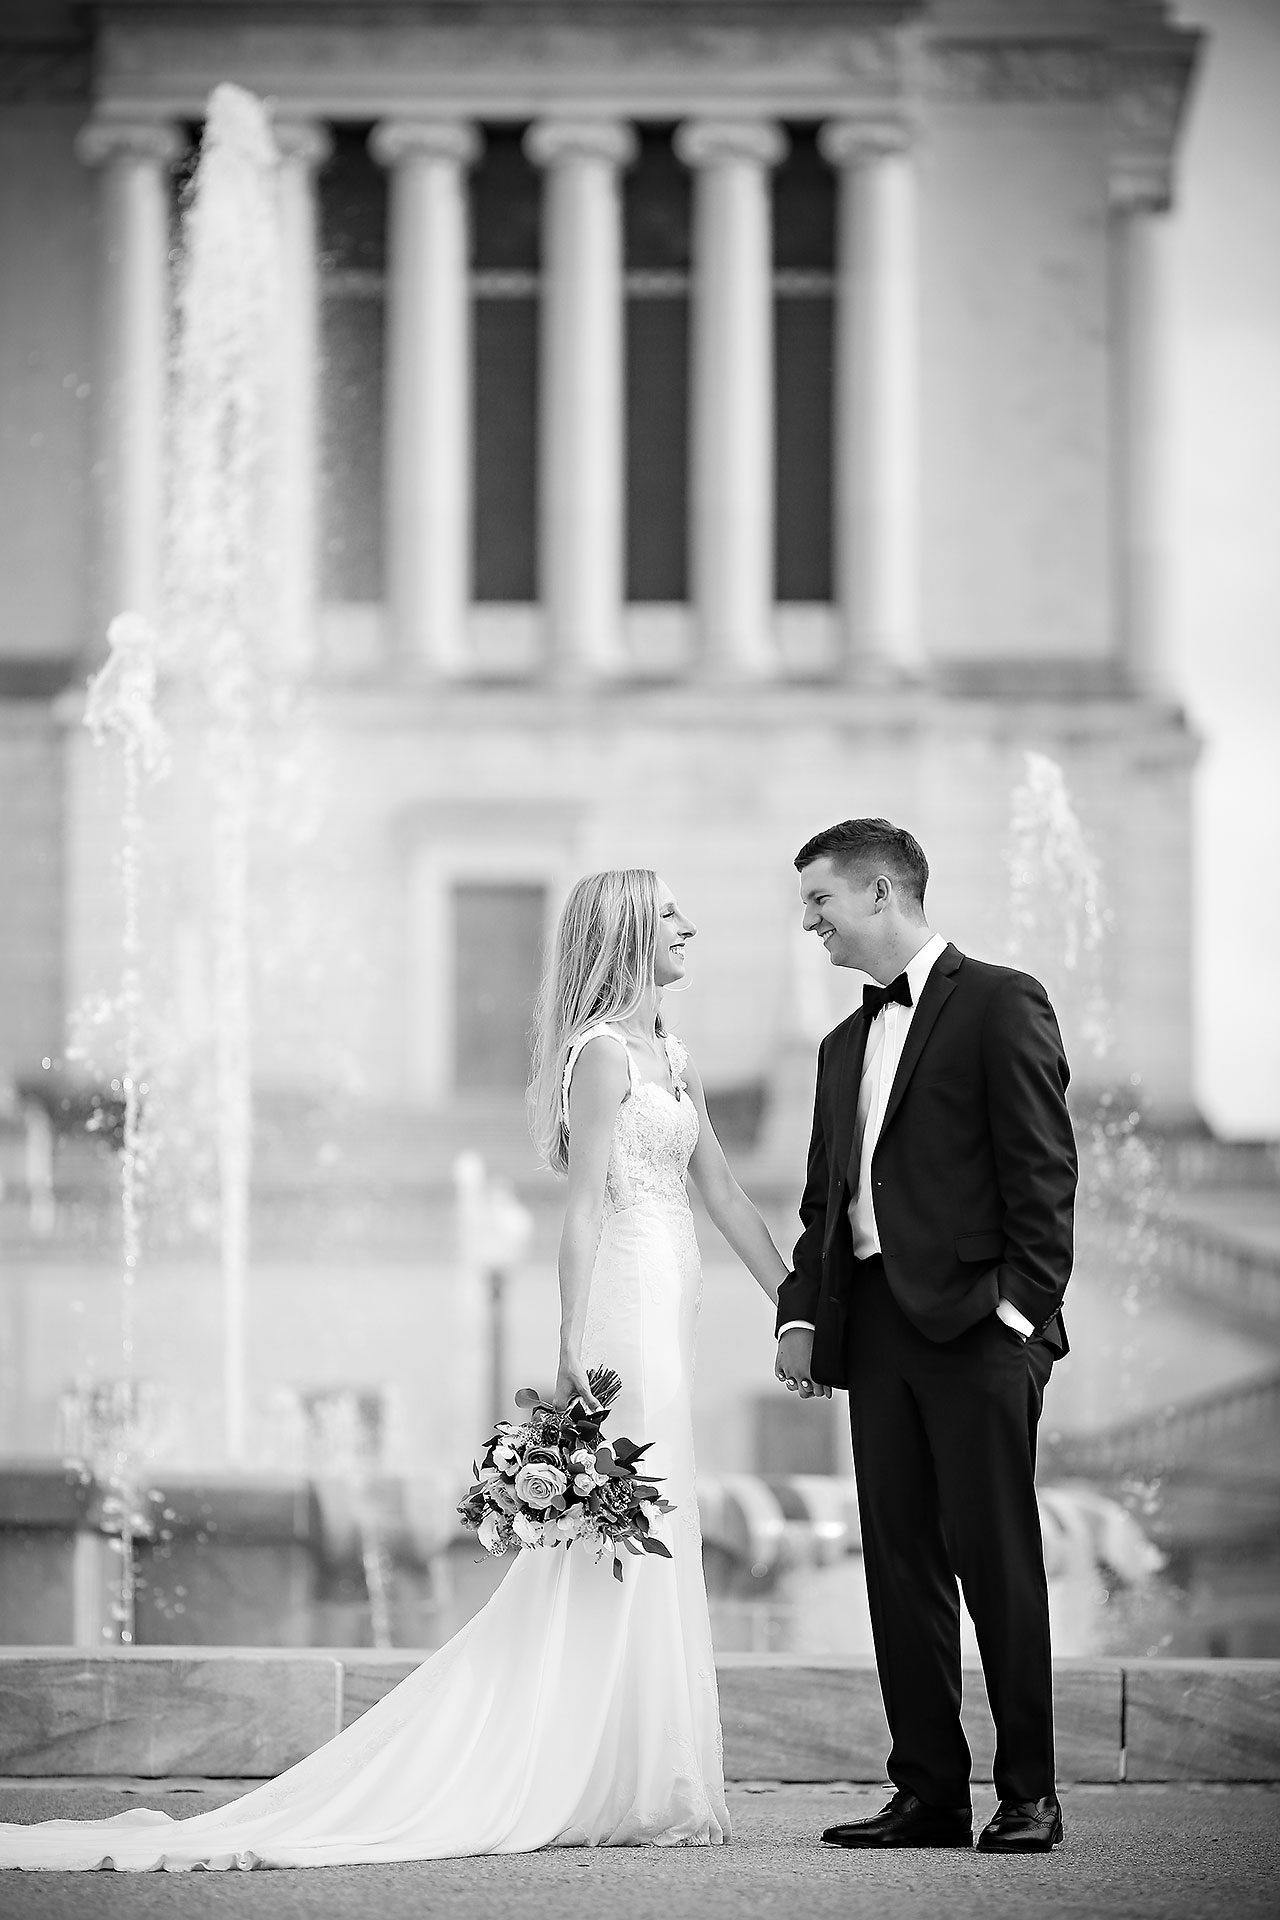 Molly Declan Scottish Rite Indianapolis Wedding 223